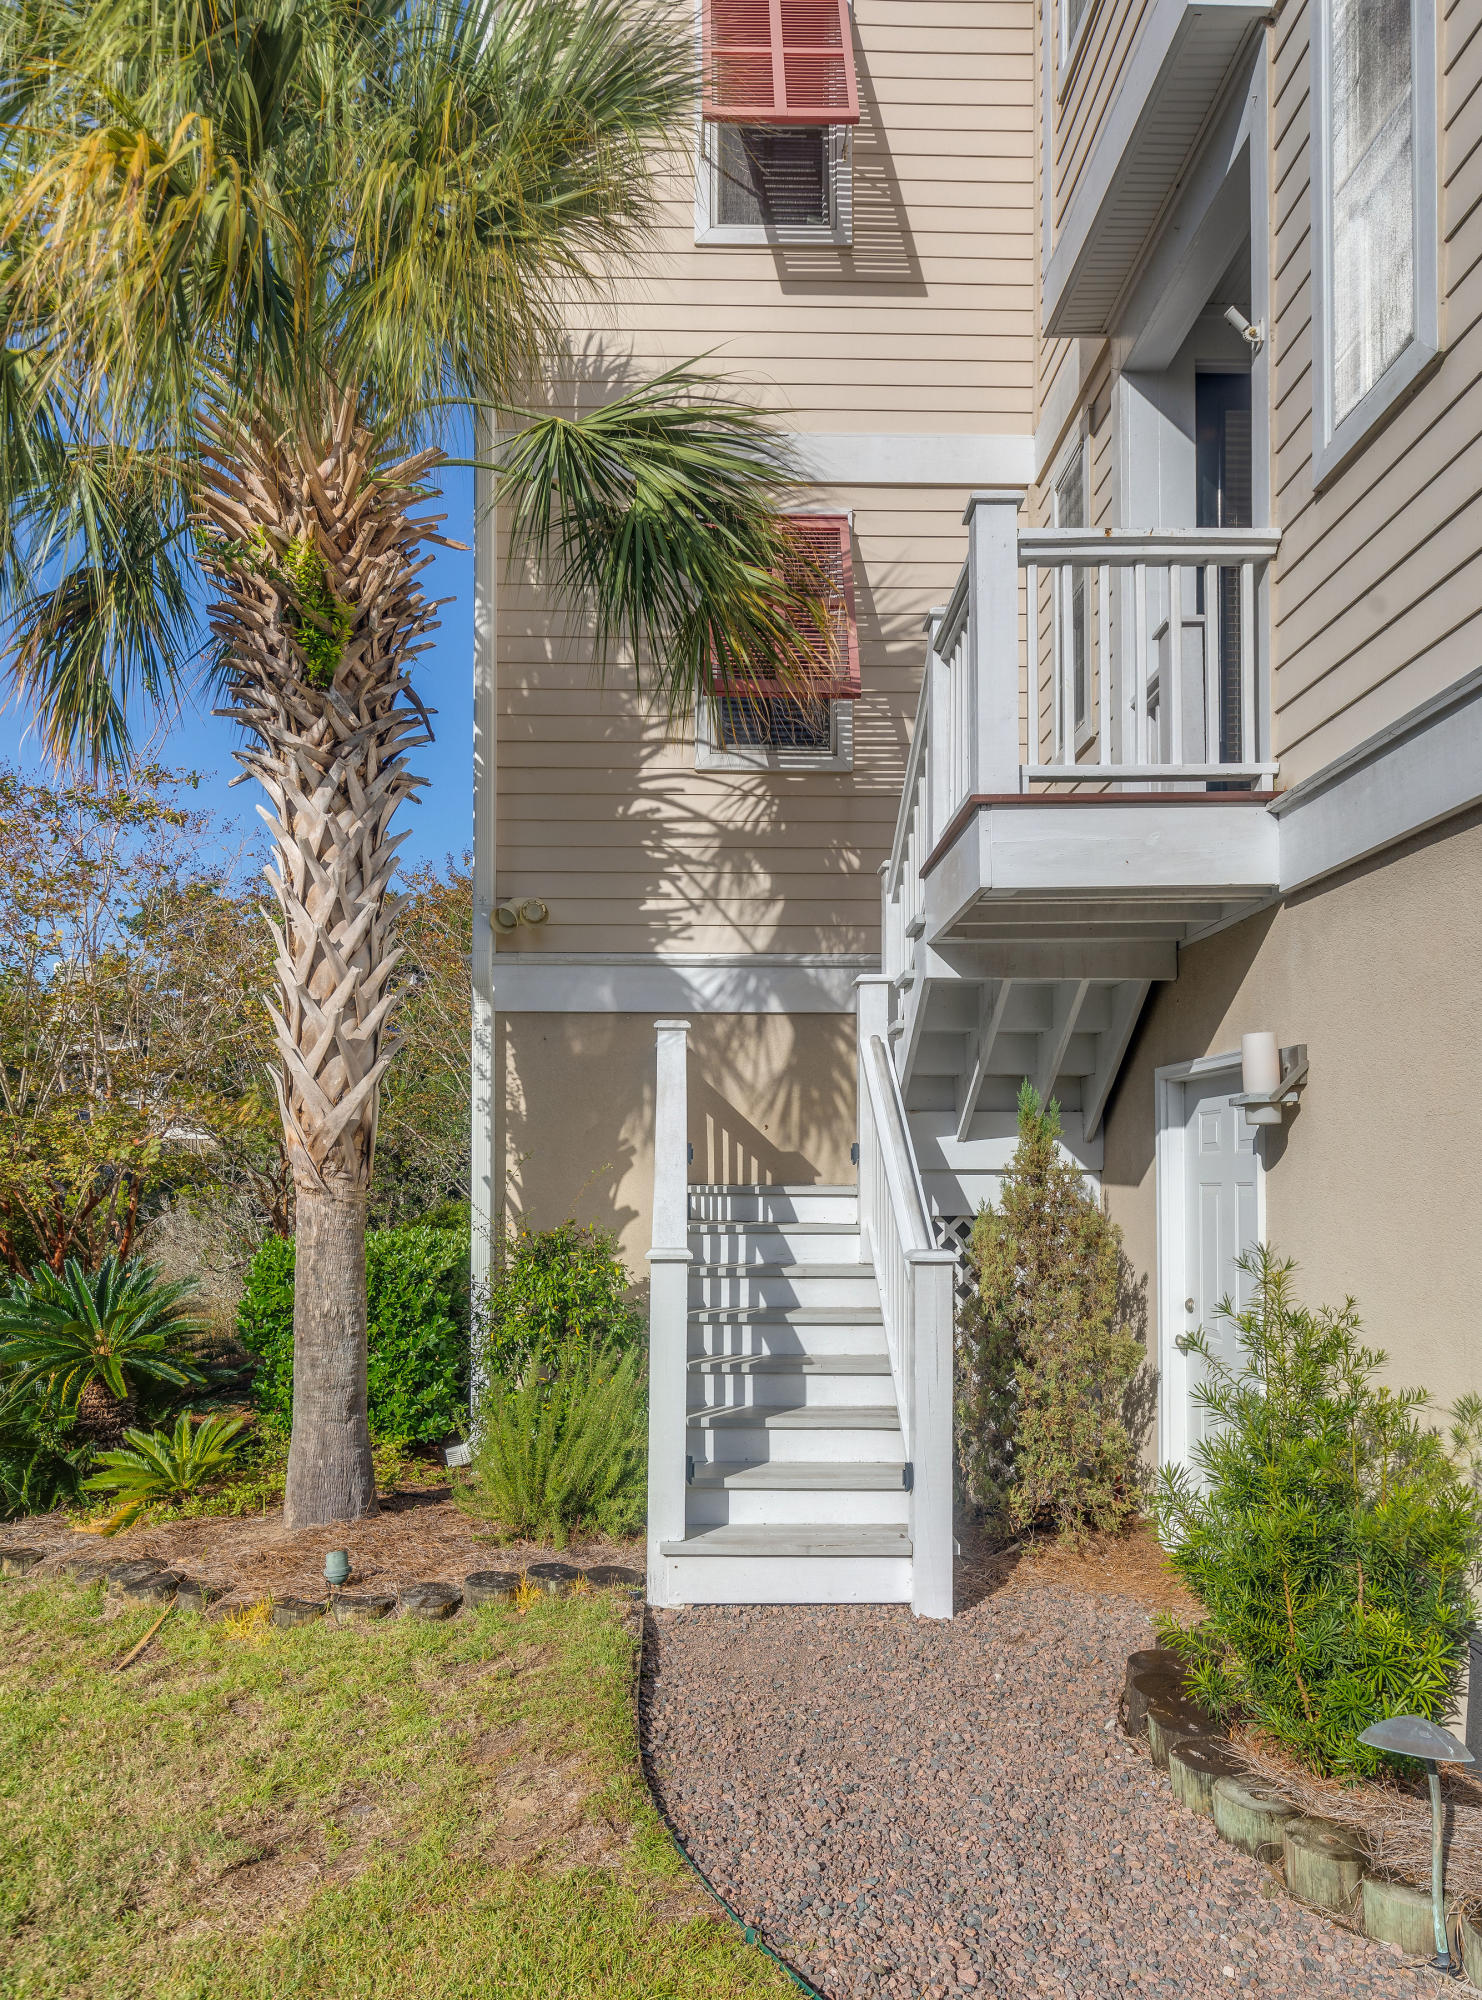 Wild Dunes Homes For Sale - 42 Seagrass, Isle of Palms, SC - 4